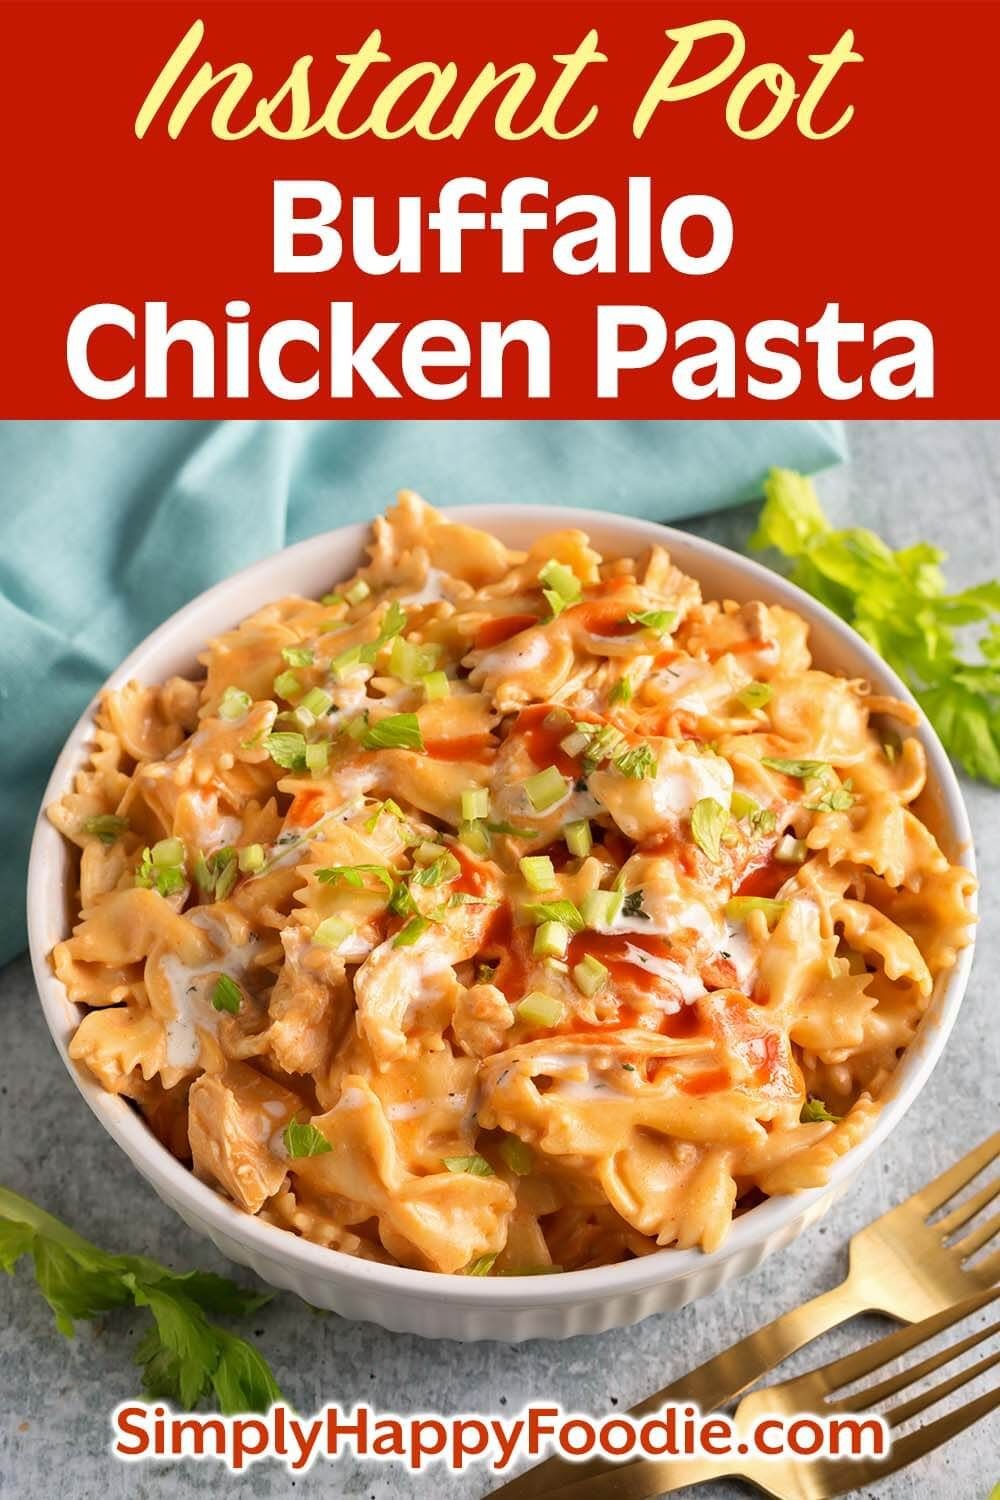 Instant Pot Buffalo Chicken Pasta is zesty, rich, and delicious! The flavor is like that of Buffalo Chicken Wings, only in a bowl of creamy, cheesy pasta! This pressure cooker Buffalo Chicken Pasta is easy to make, and is great for a weeknight meal, or for a Game Day party! Instant Pot recipes by simplyhappyfoodie.com #instantpotbuffalochickenpasta #pressurecookerbuffalochickenpasta #instantpotrecipes